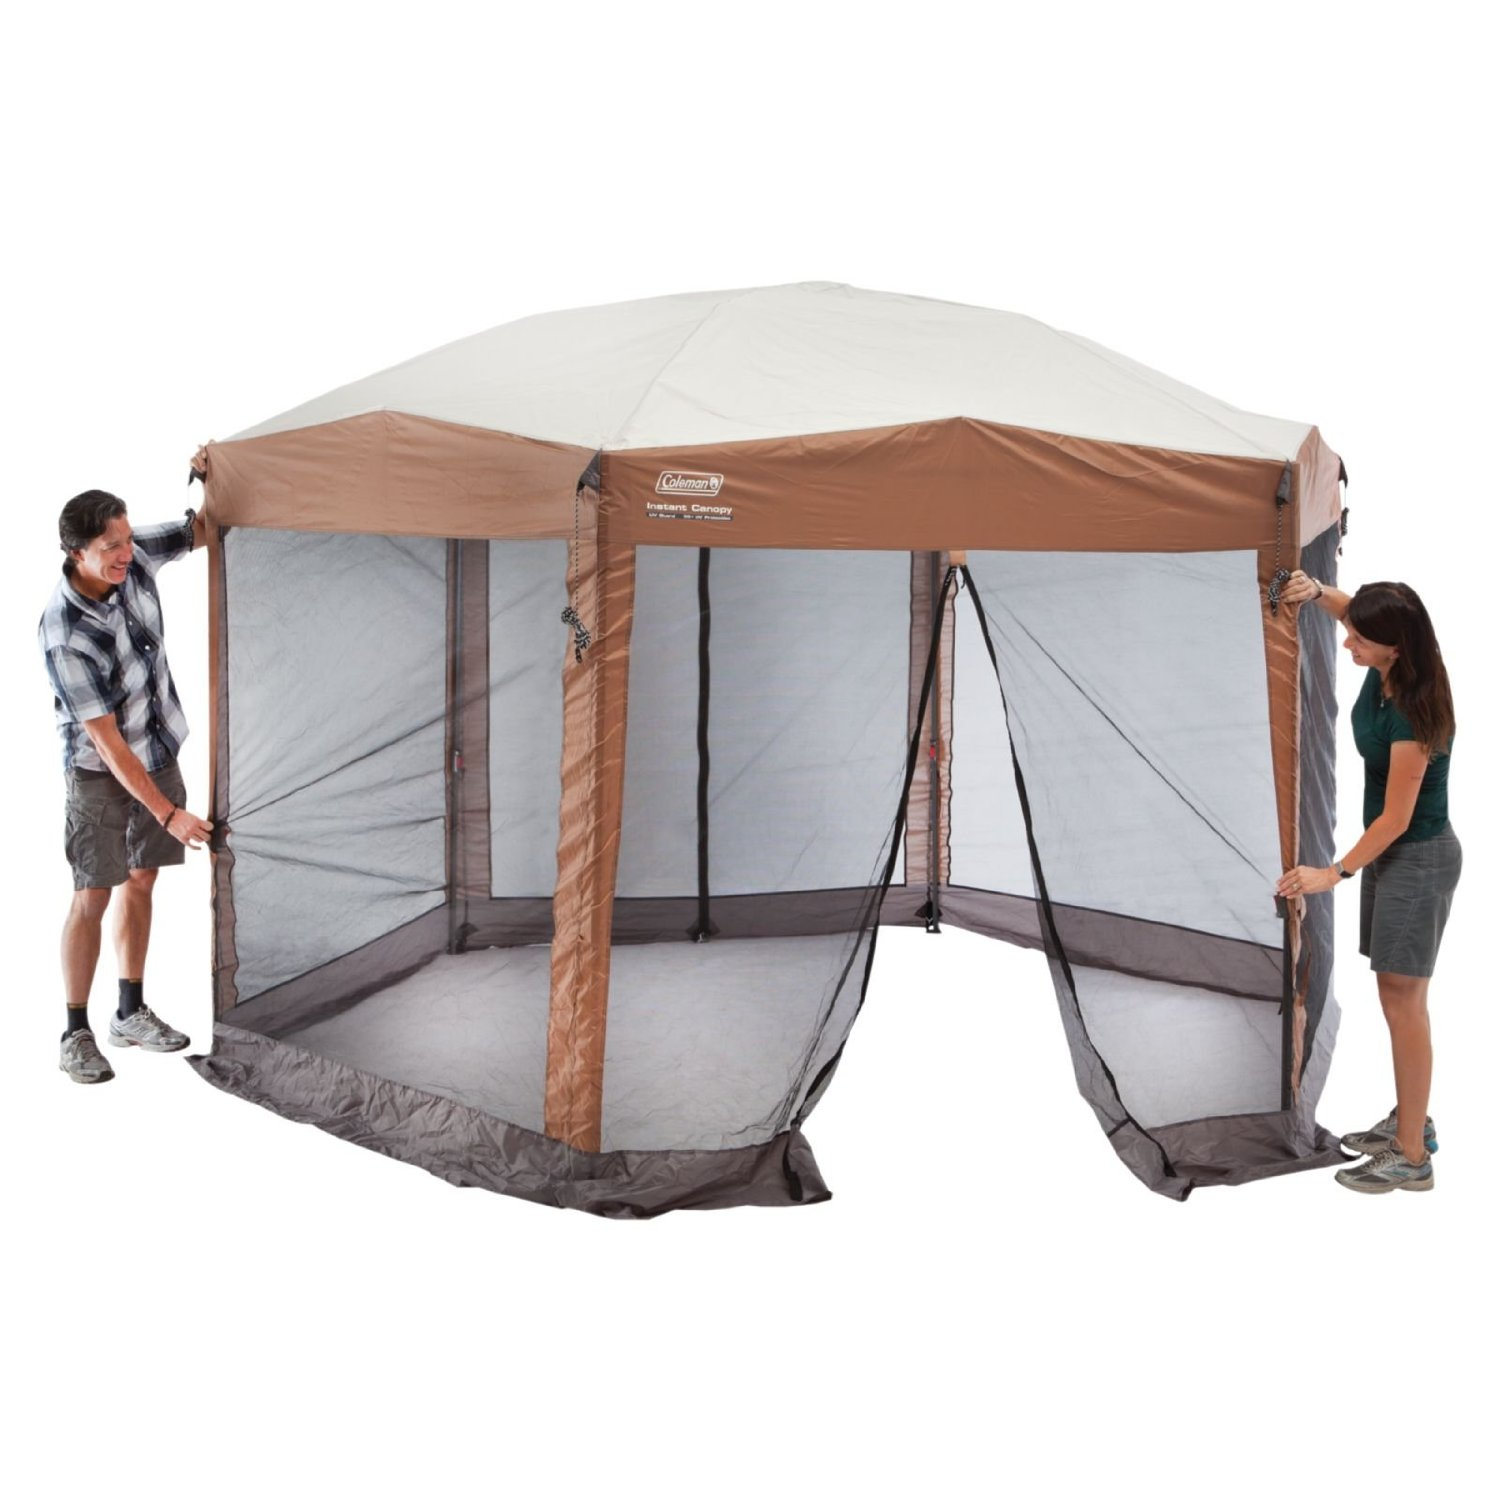 Coleman Back Home 12 x 10-Foot Instant Screen House Hexagon Canopy | 2000028003  sc 1 st  Walmart & Coleman Back Home 12 x 10-Foot Instant Screen House Hexagon Canopy ...